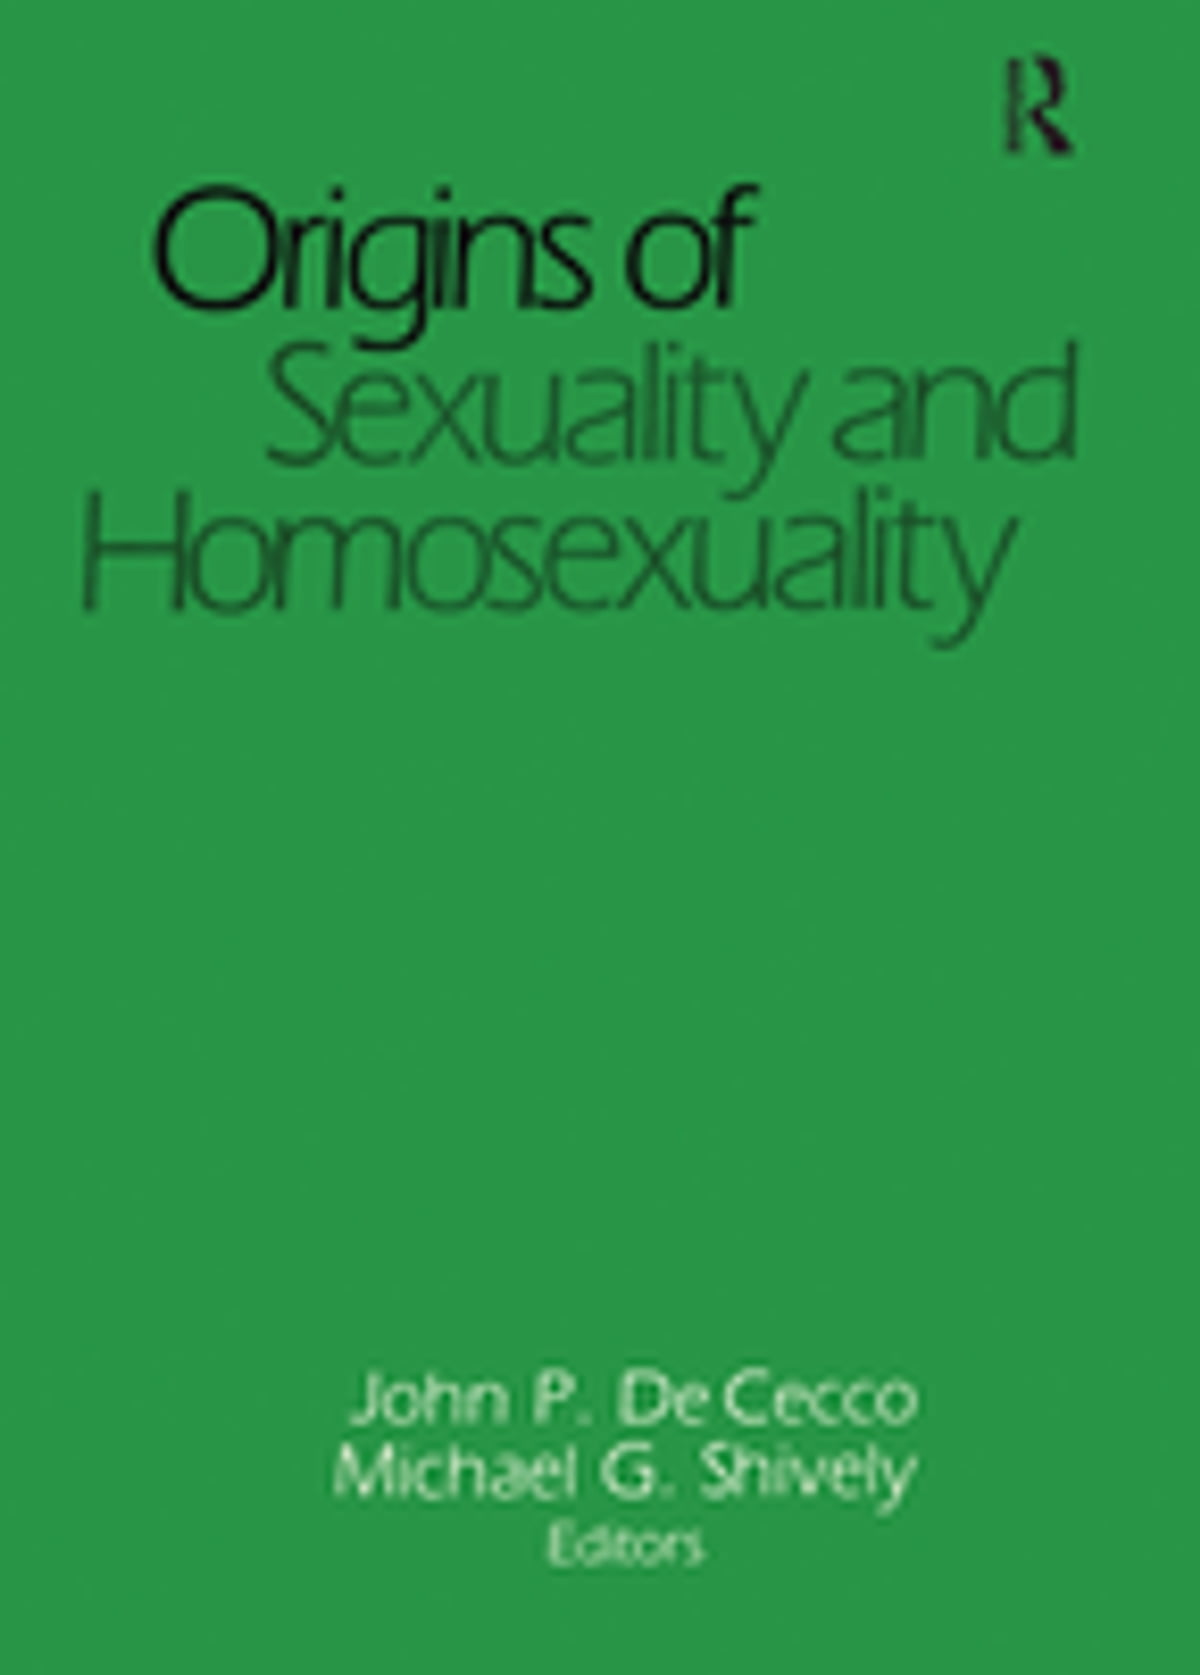 Homosexuality and biology